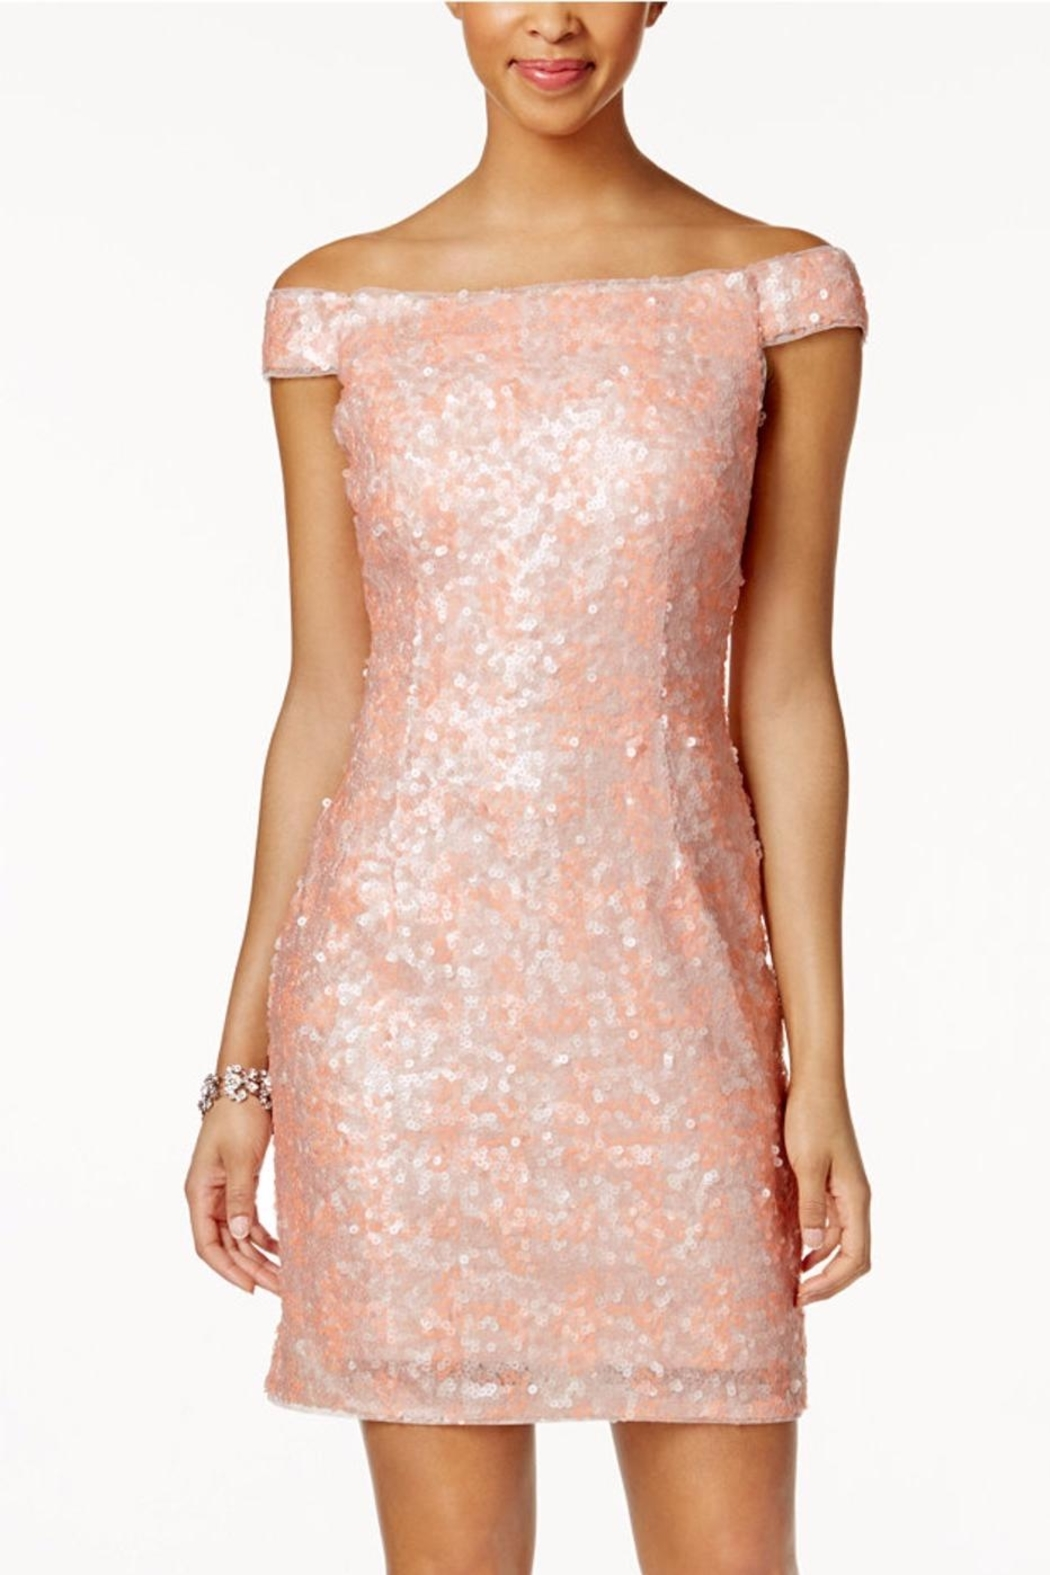 Adrianna Papell Off Shoulder Sheath Dress - Front Cropped Image